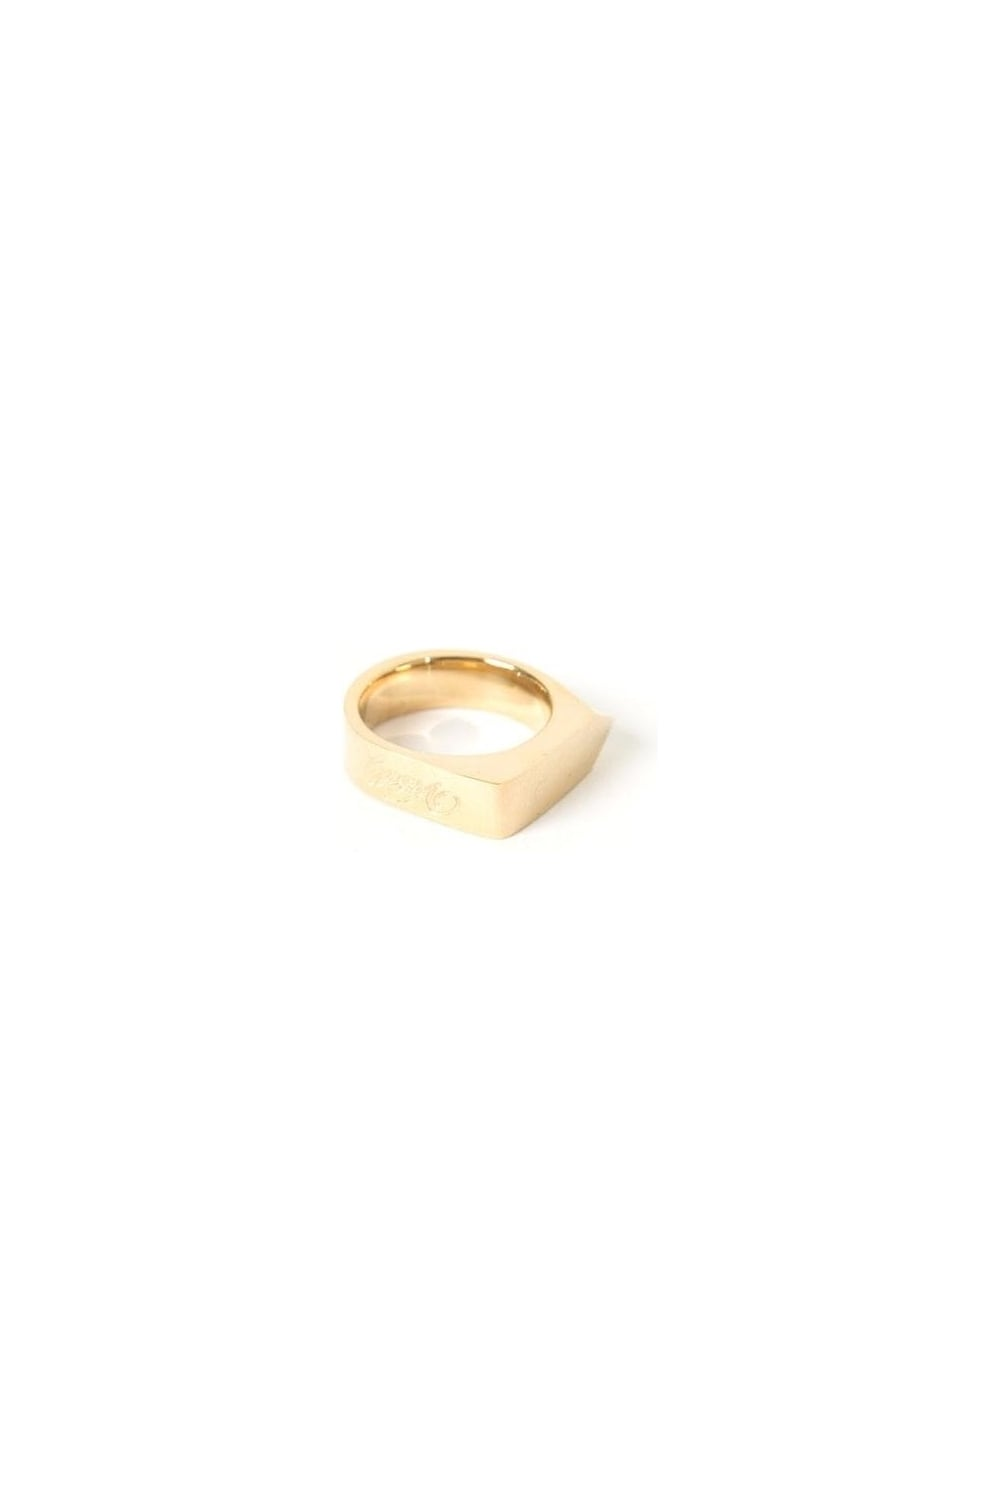 vitaly jewellery odak ring in gold intro clothing